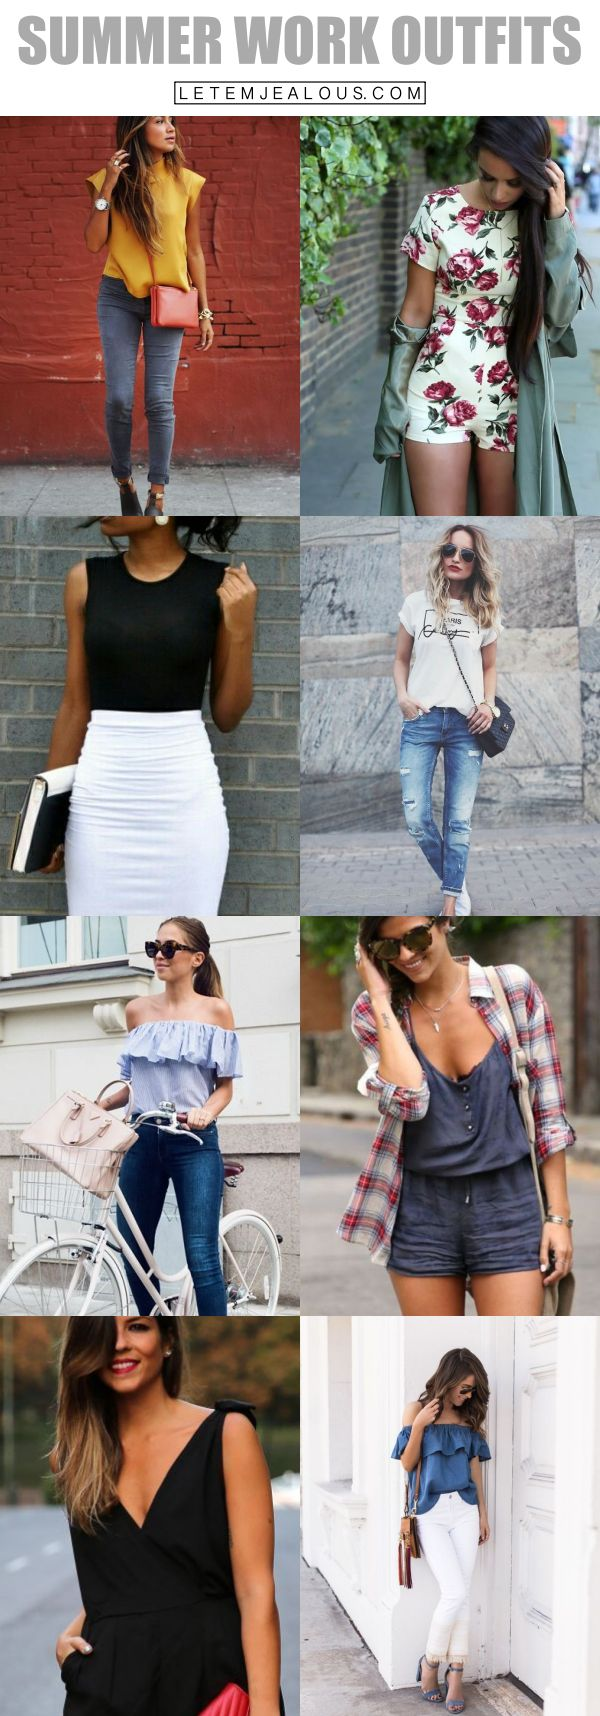 45 Charming Summer Work Outfits to be Fashionista in your Office